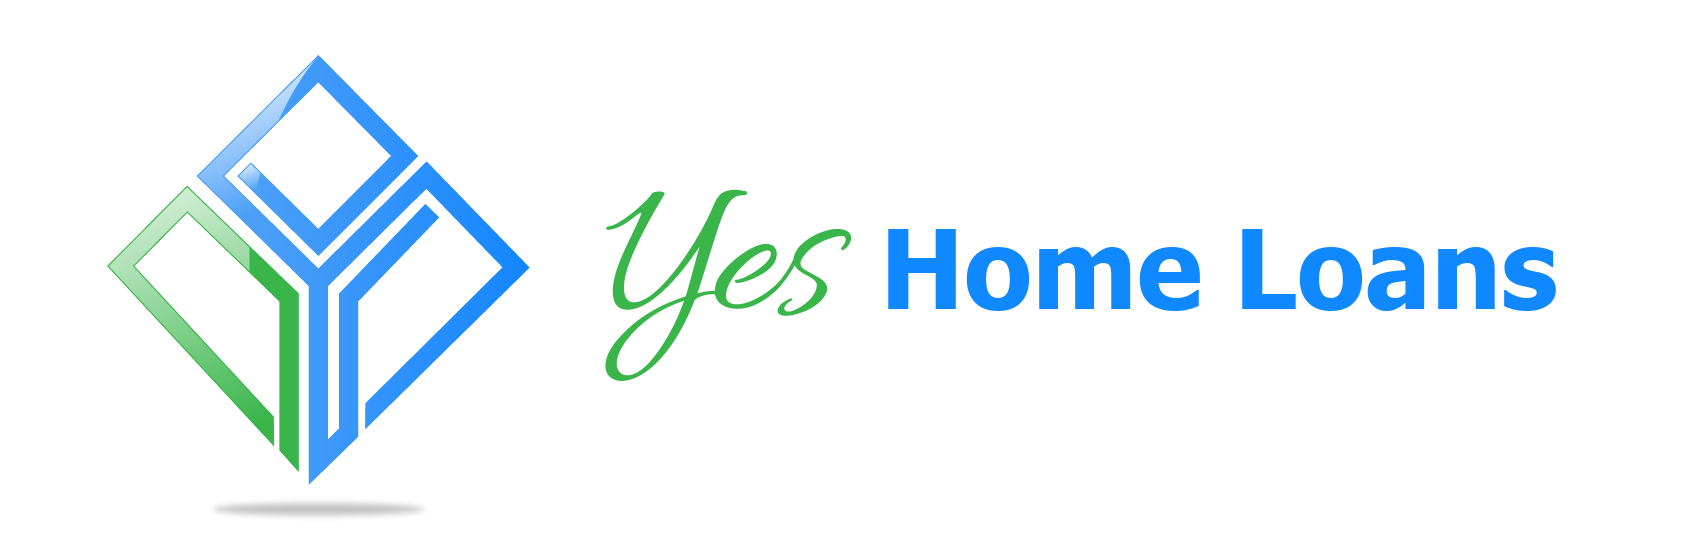 Yes Home Loans, Inc. logo